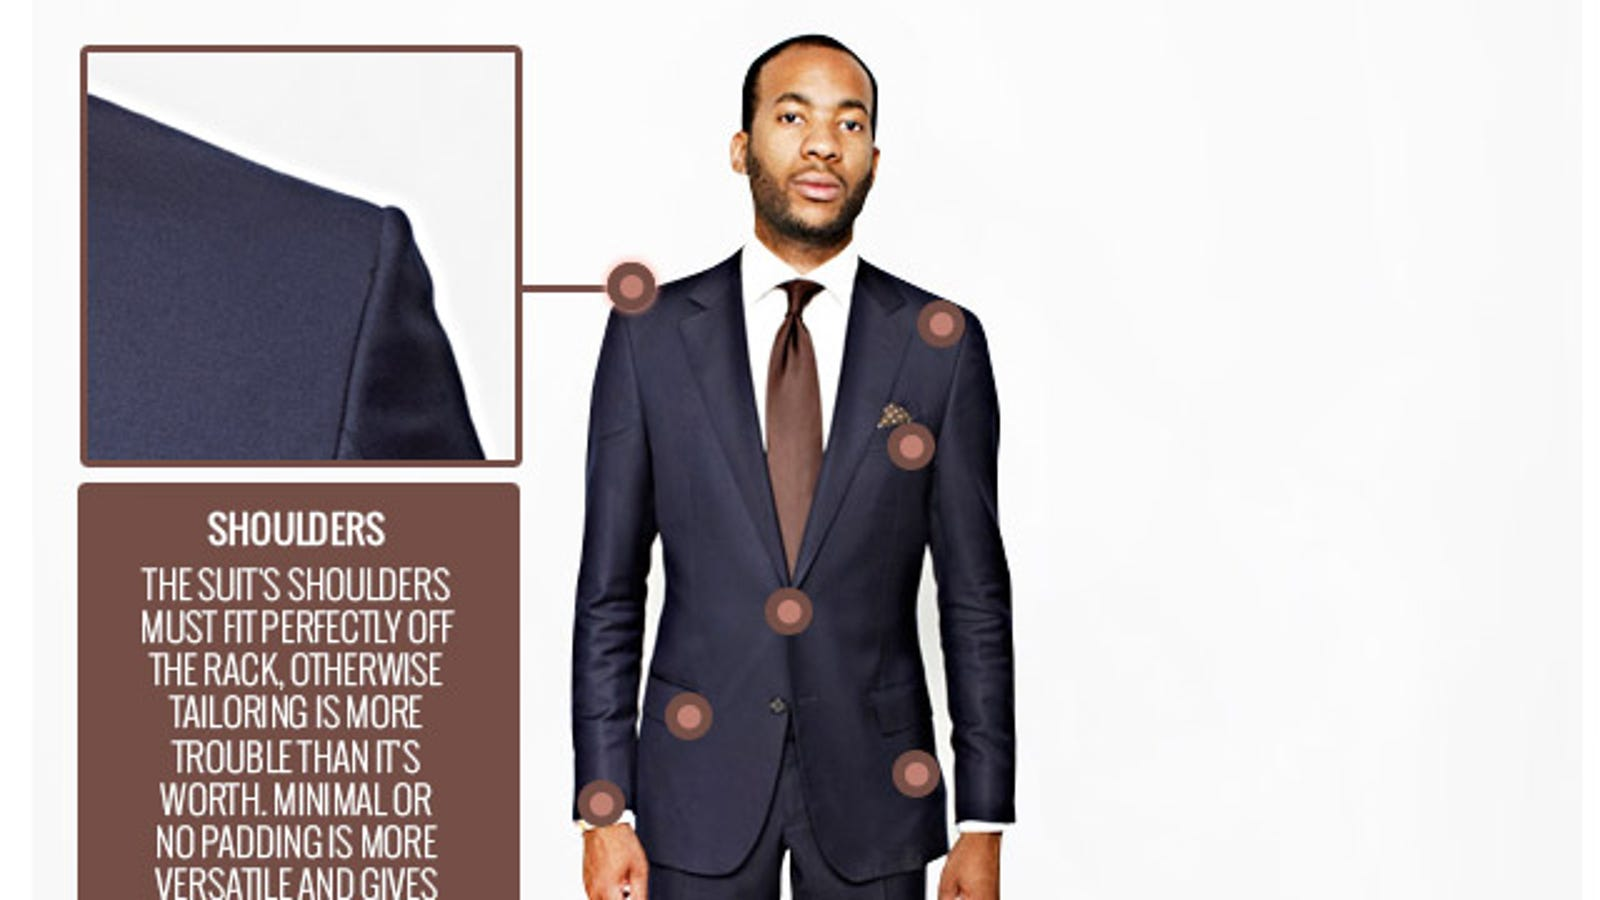 Don t Buy a Suit Unless the Shoulders Fit Perfectly (and Other Suit-Buying  Tips) 5f9ded20753